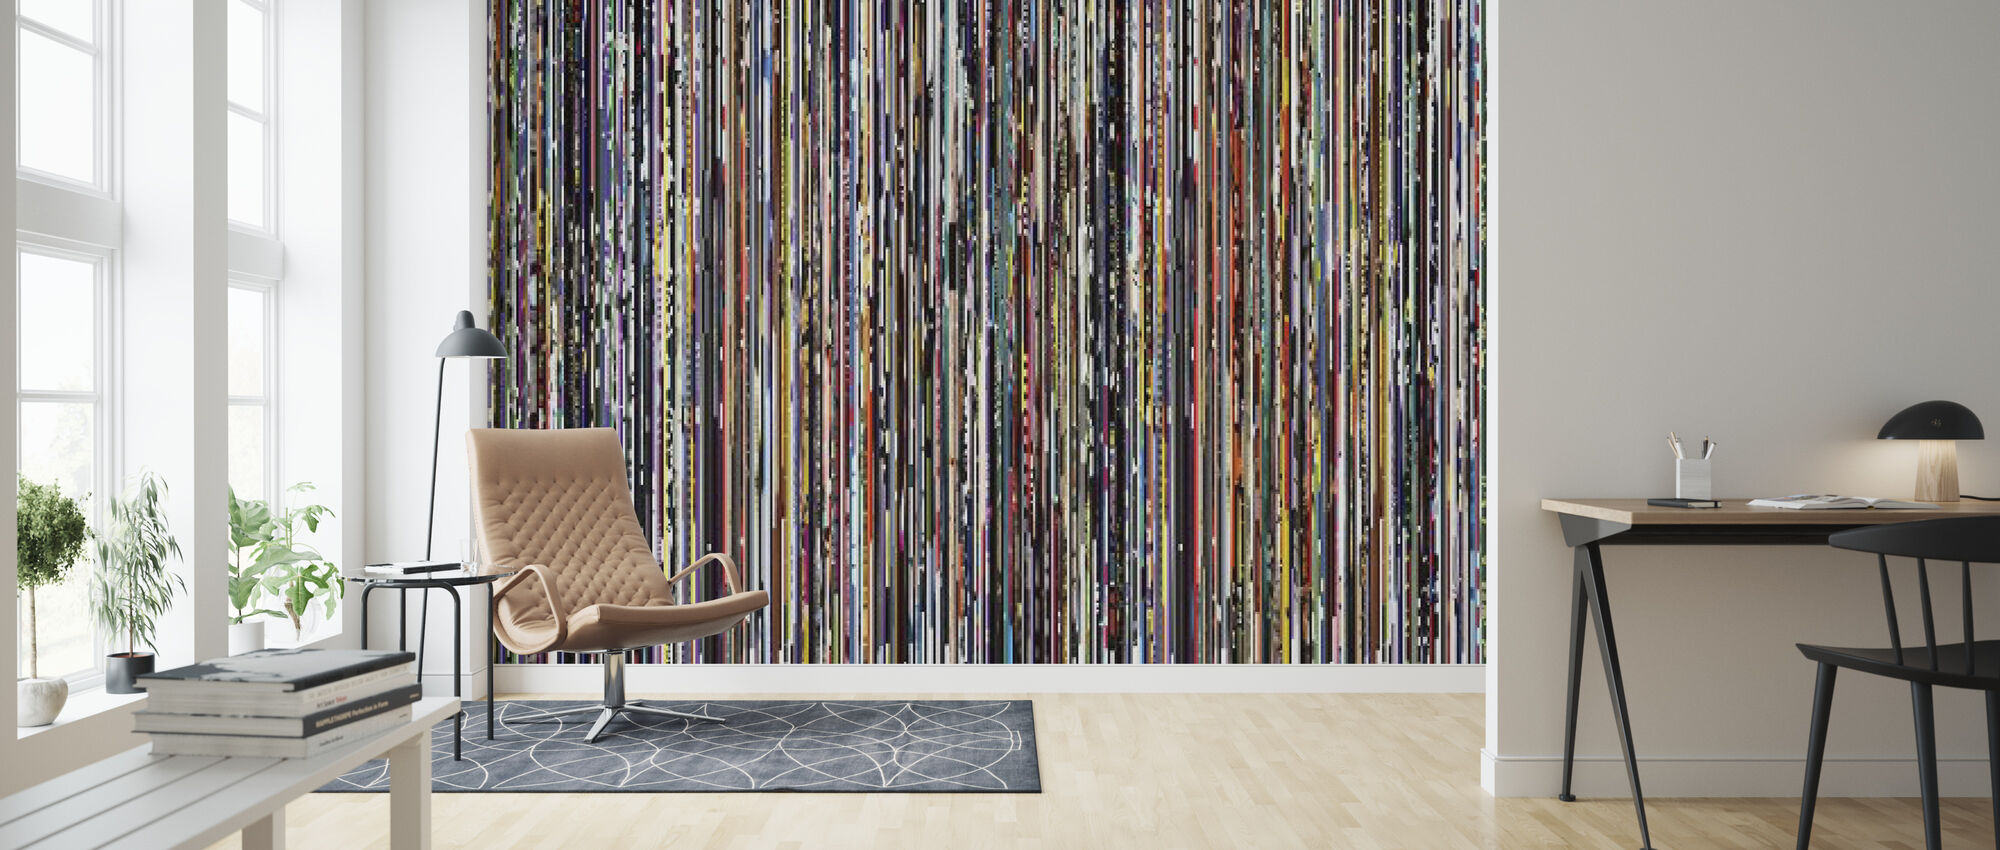 - Datrix - Wallpaper - Living Room